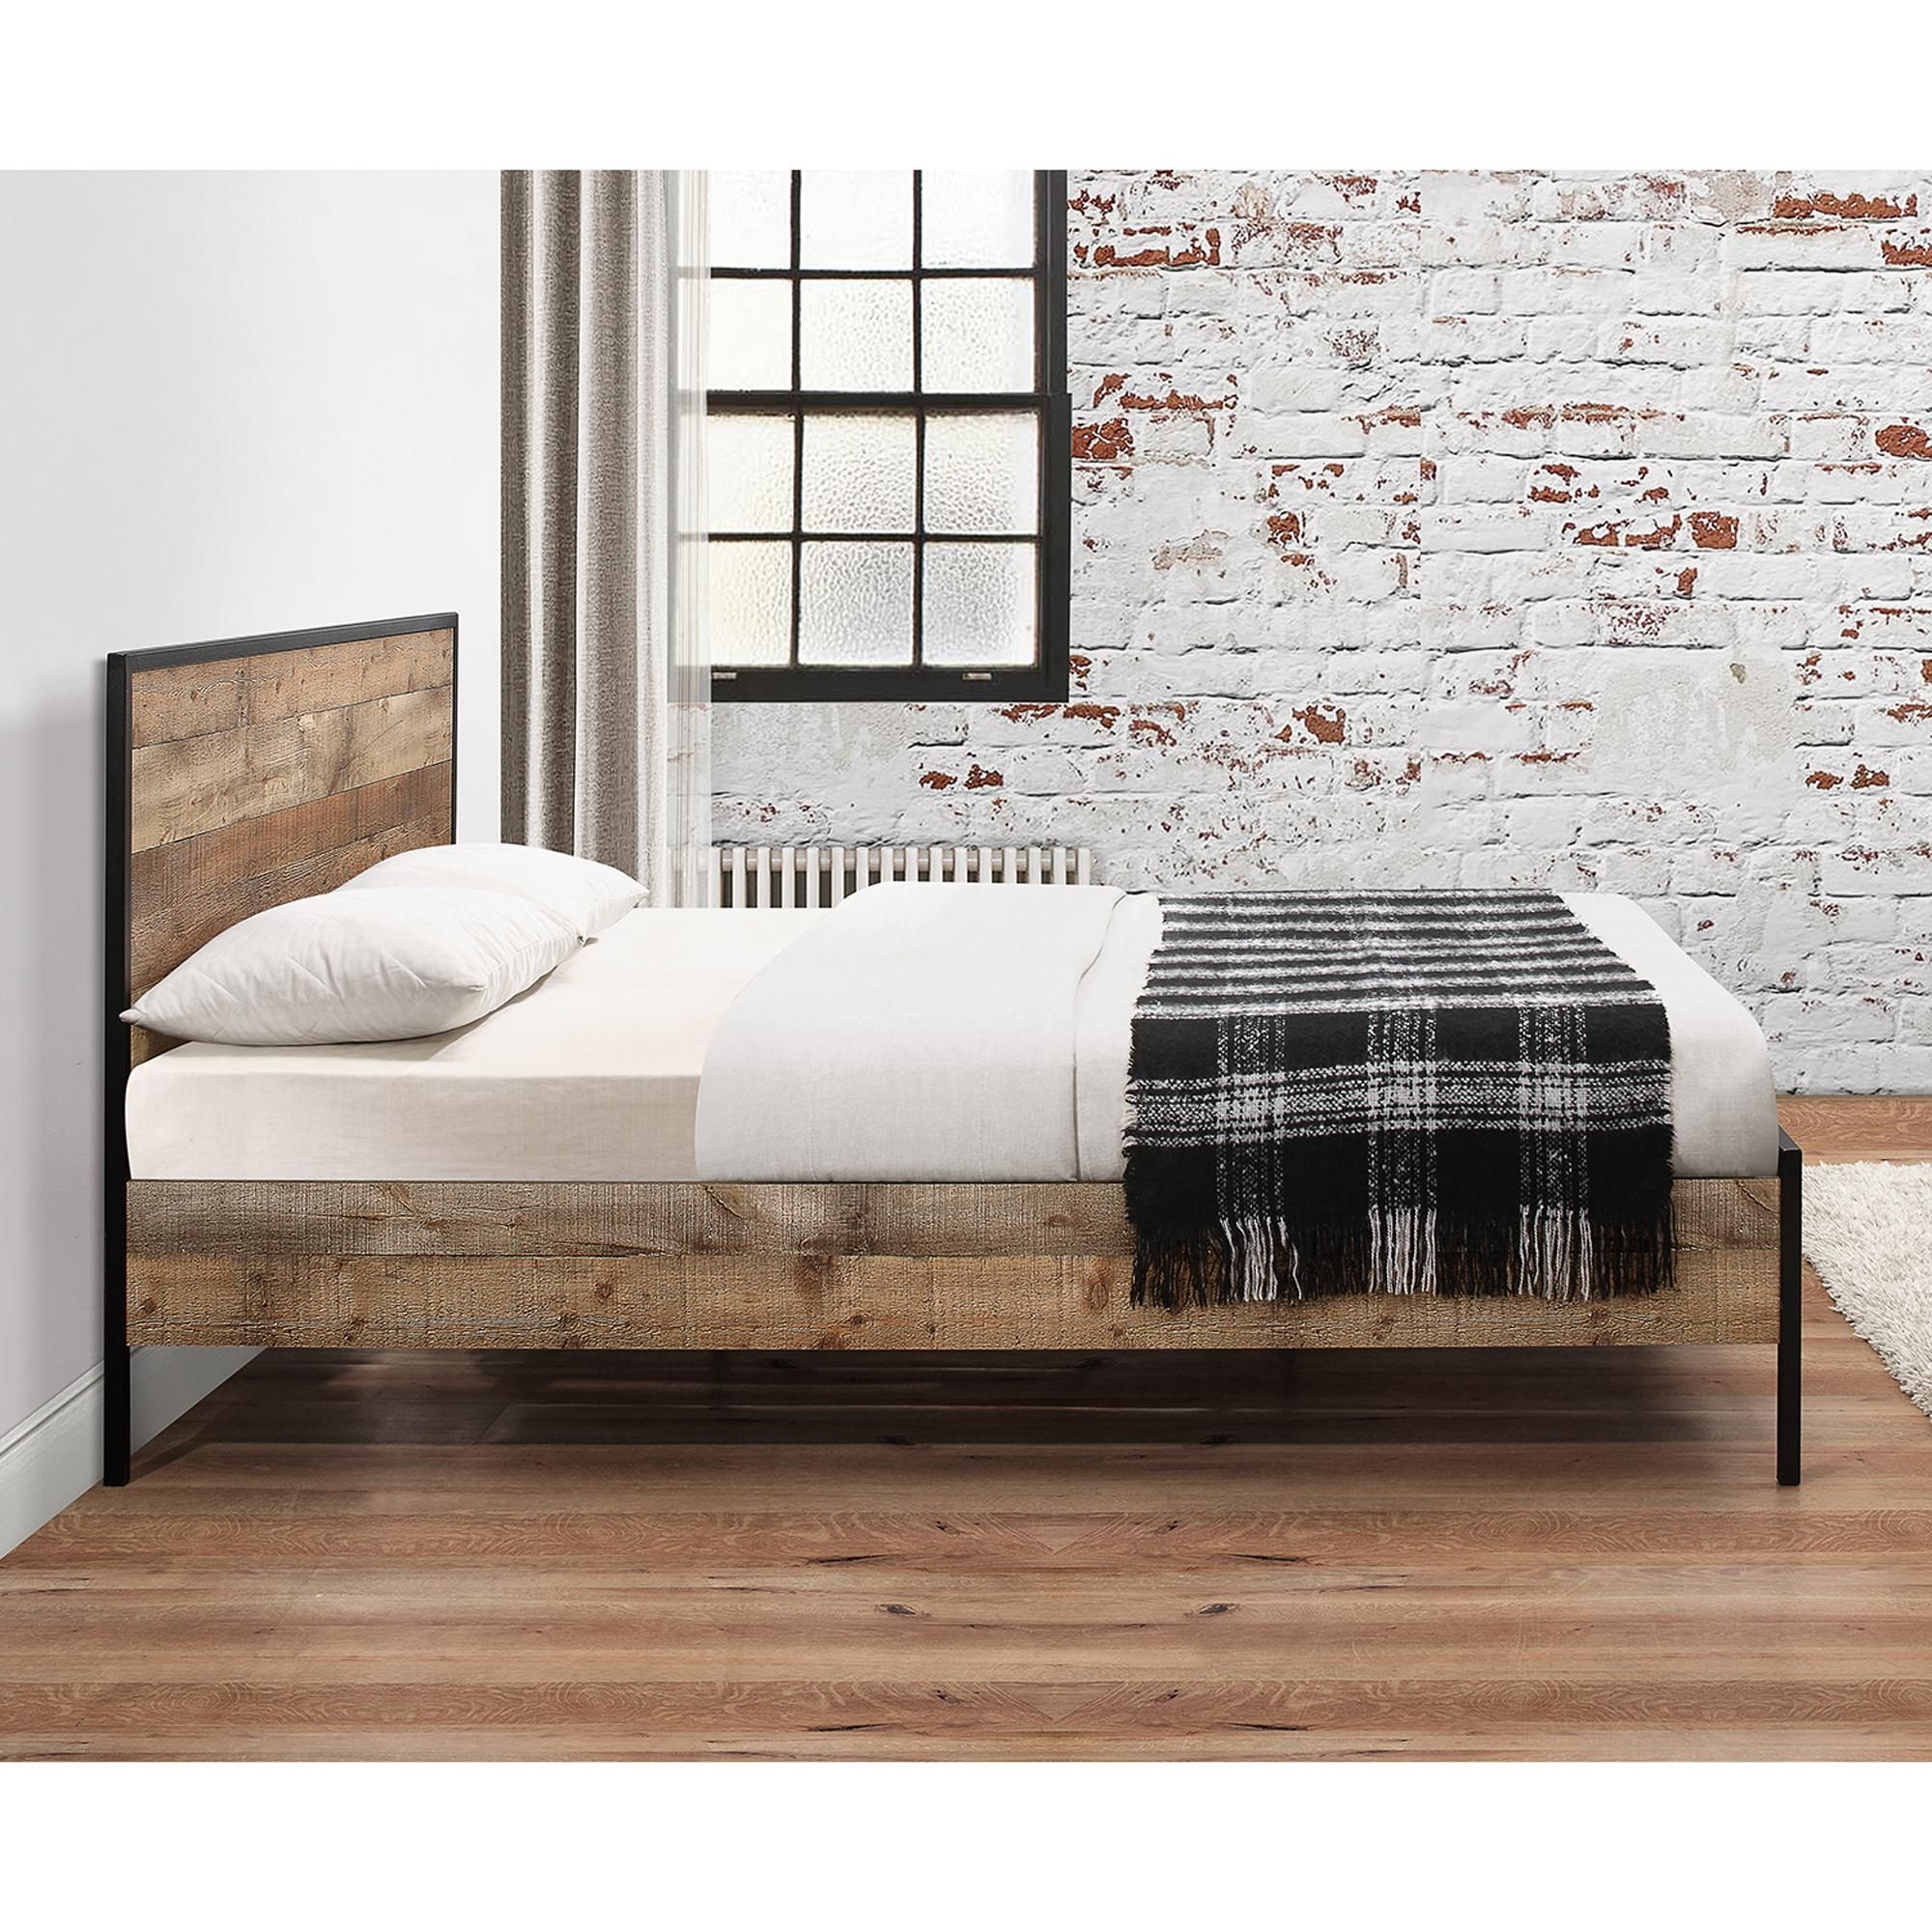 Urban Rustic Bed Frame In 2020 Rustic Bedding Bed Frame Urban